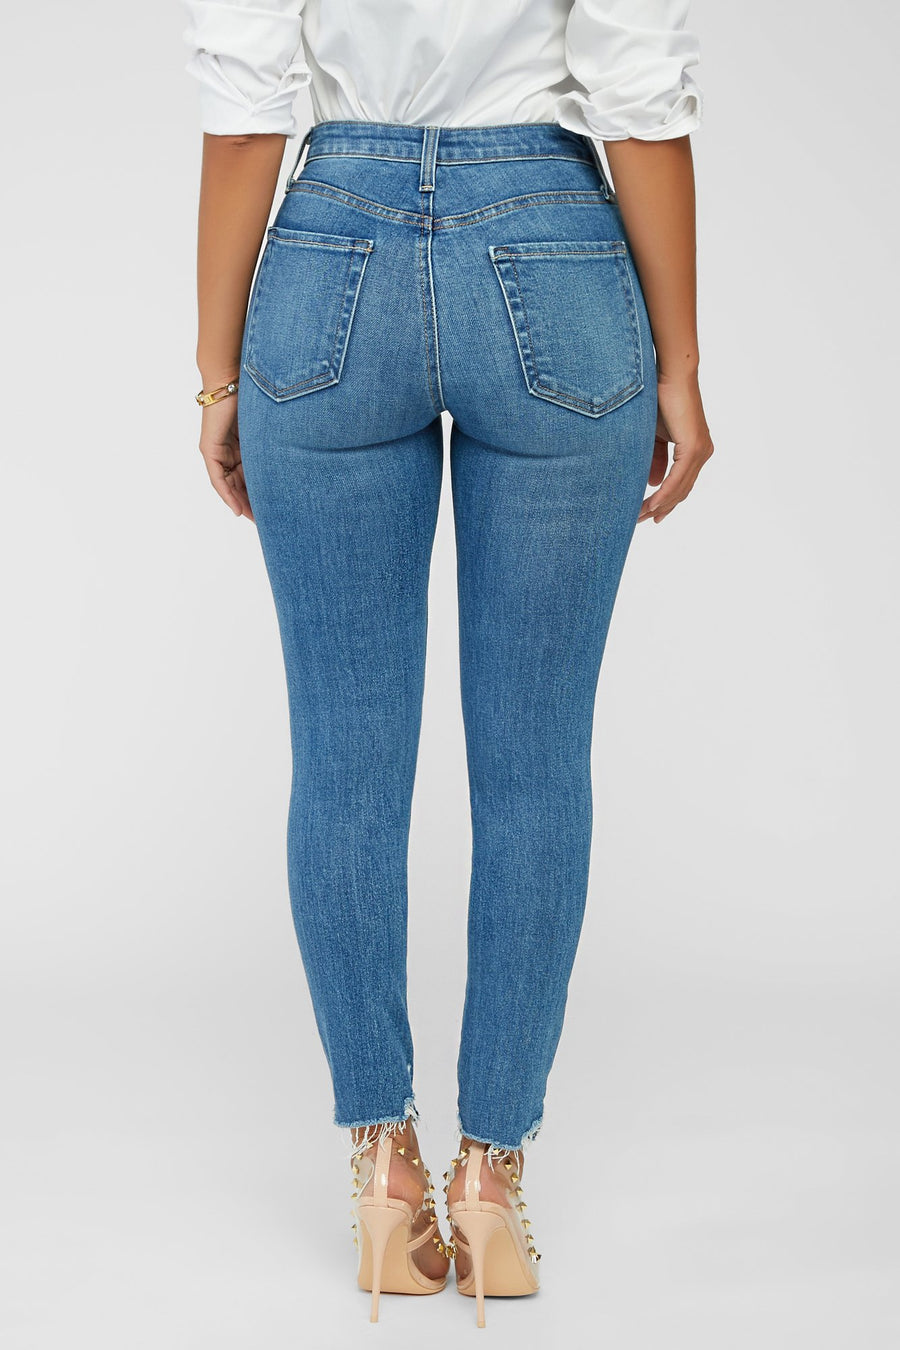 On A New Level Jeans - Medium